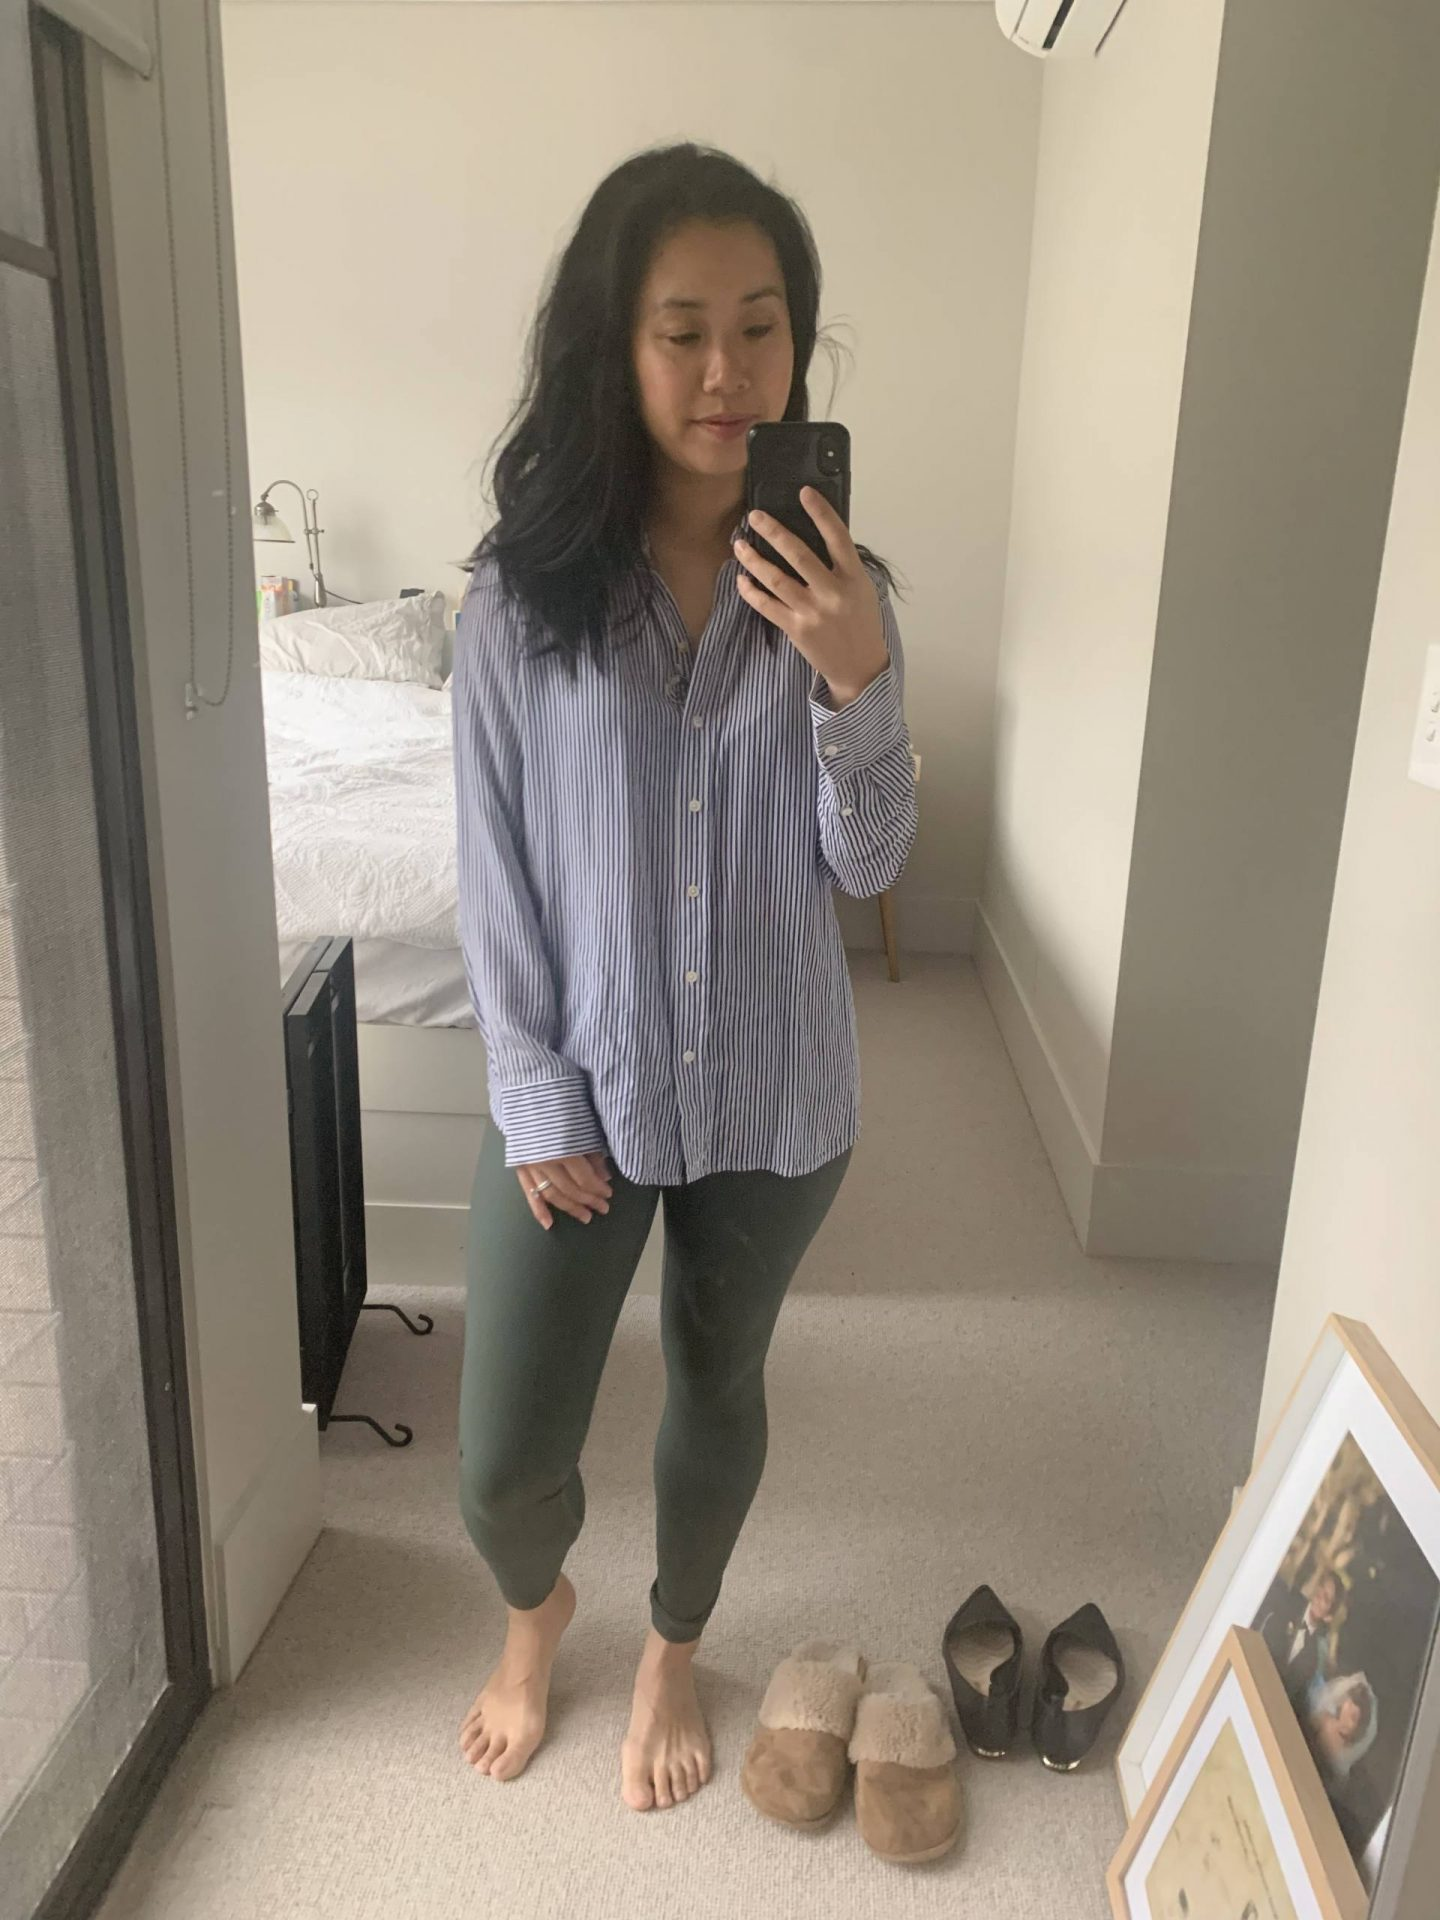 petite workwear blogger wearing silk shirt and leggings in blog post about comfortable wfh pieces